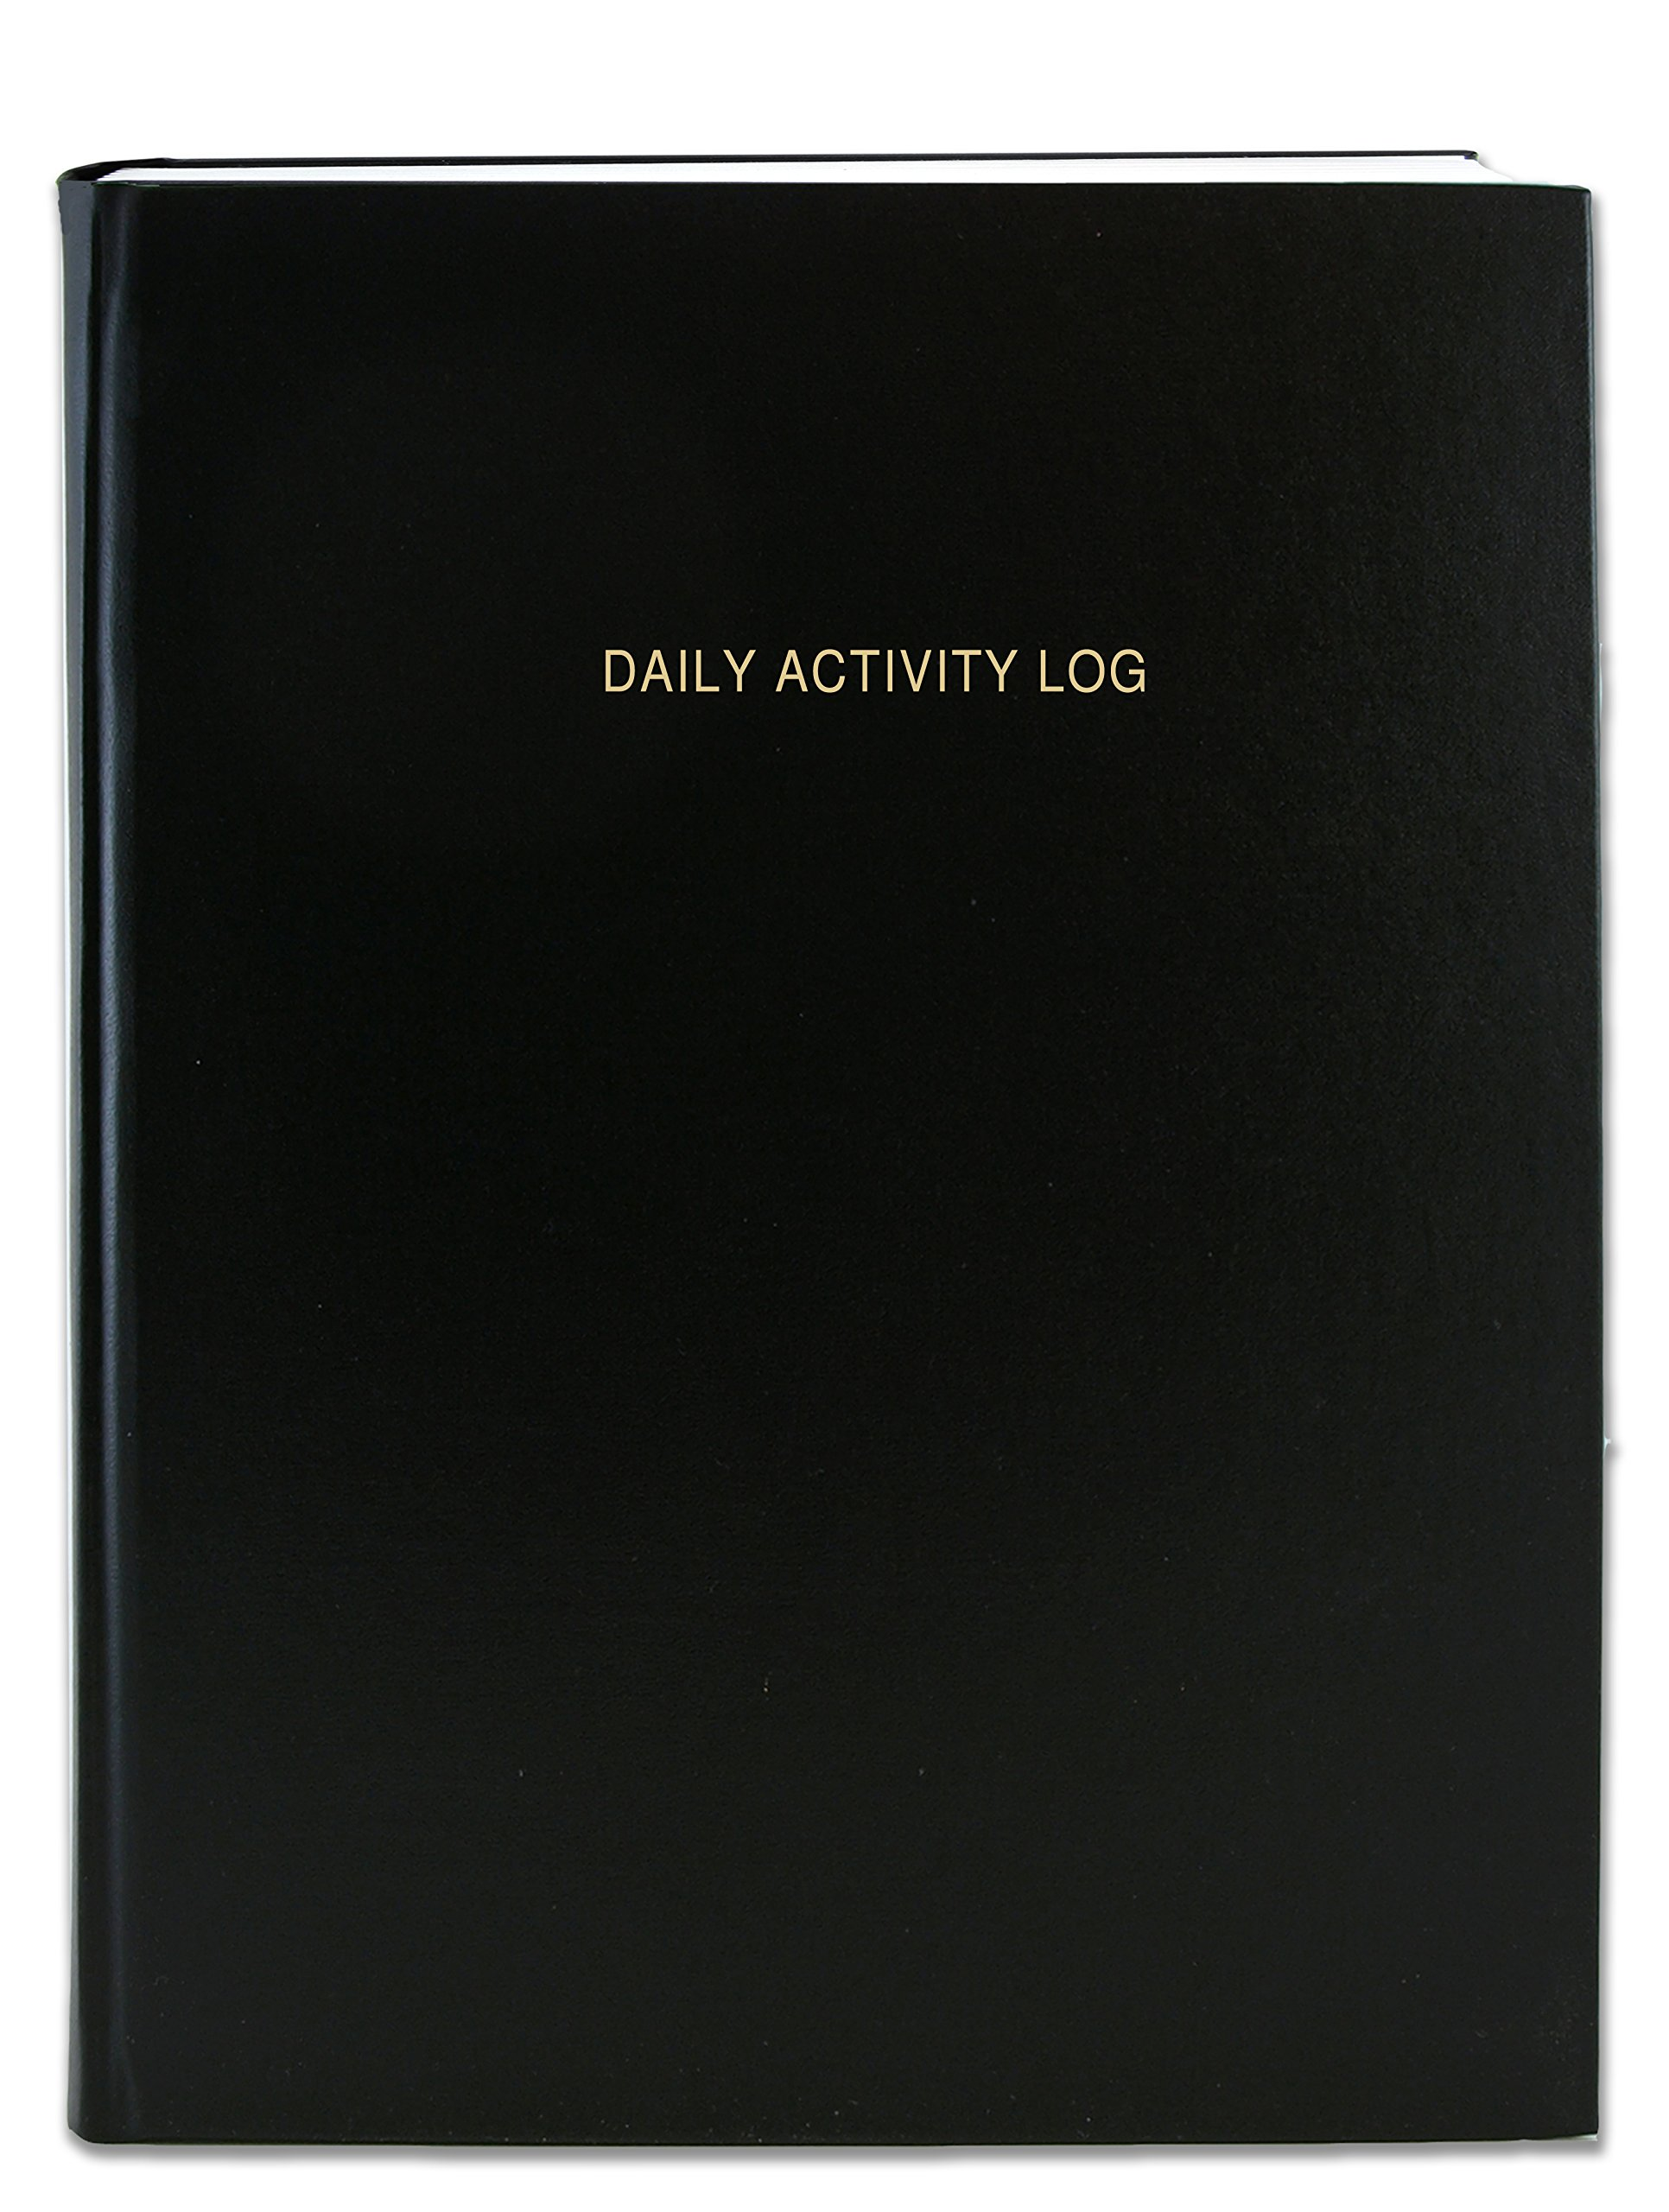 BookFactory Daily Activity Log Book / 365 Day Log Book (384 Pages) / 365 Page Diary, Black Cover, Smyth Sewn Hardbound, 8 7/8'' x 11 1/4'' (LOG-384-DAY-A-LKT32)